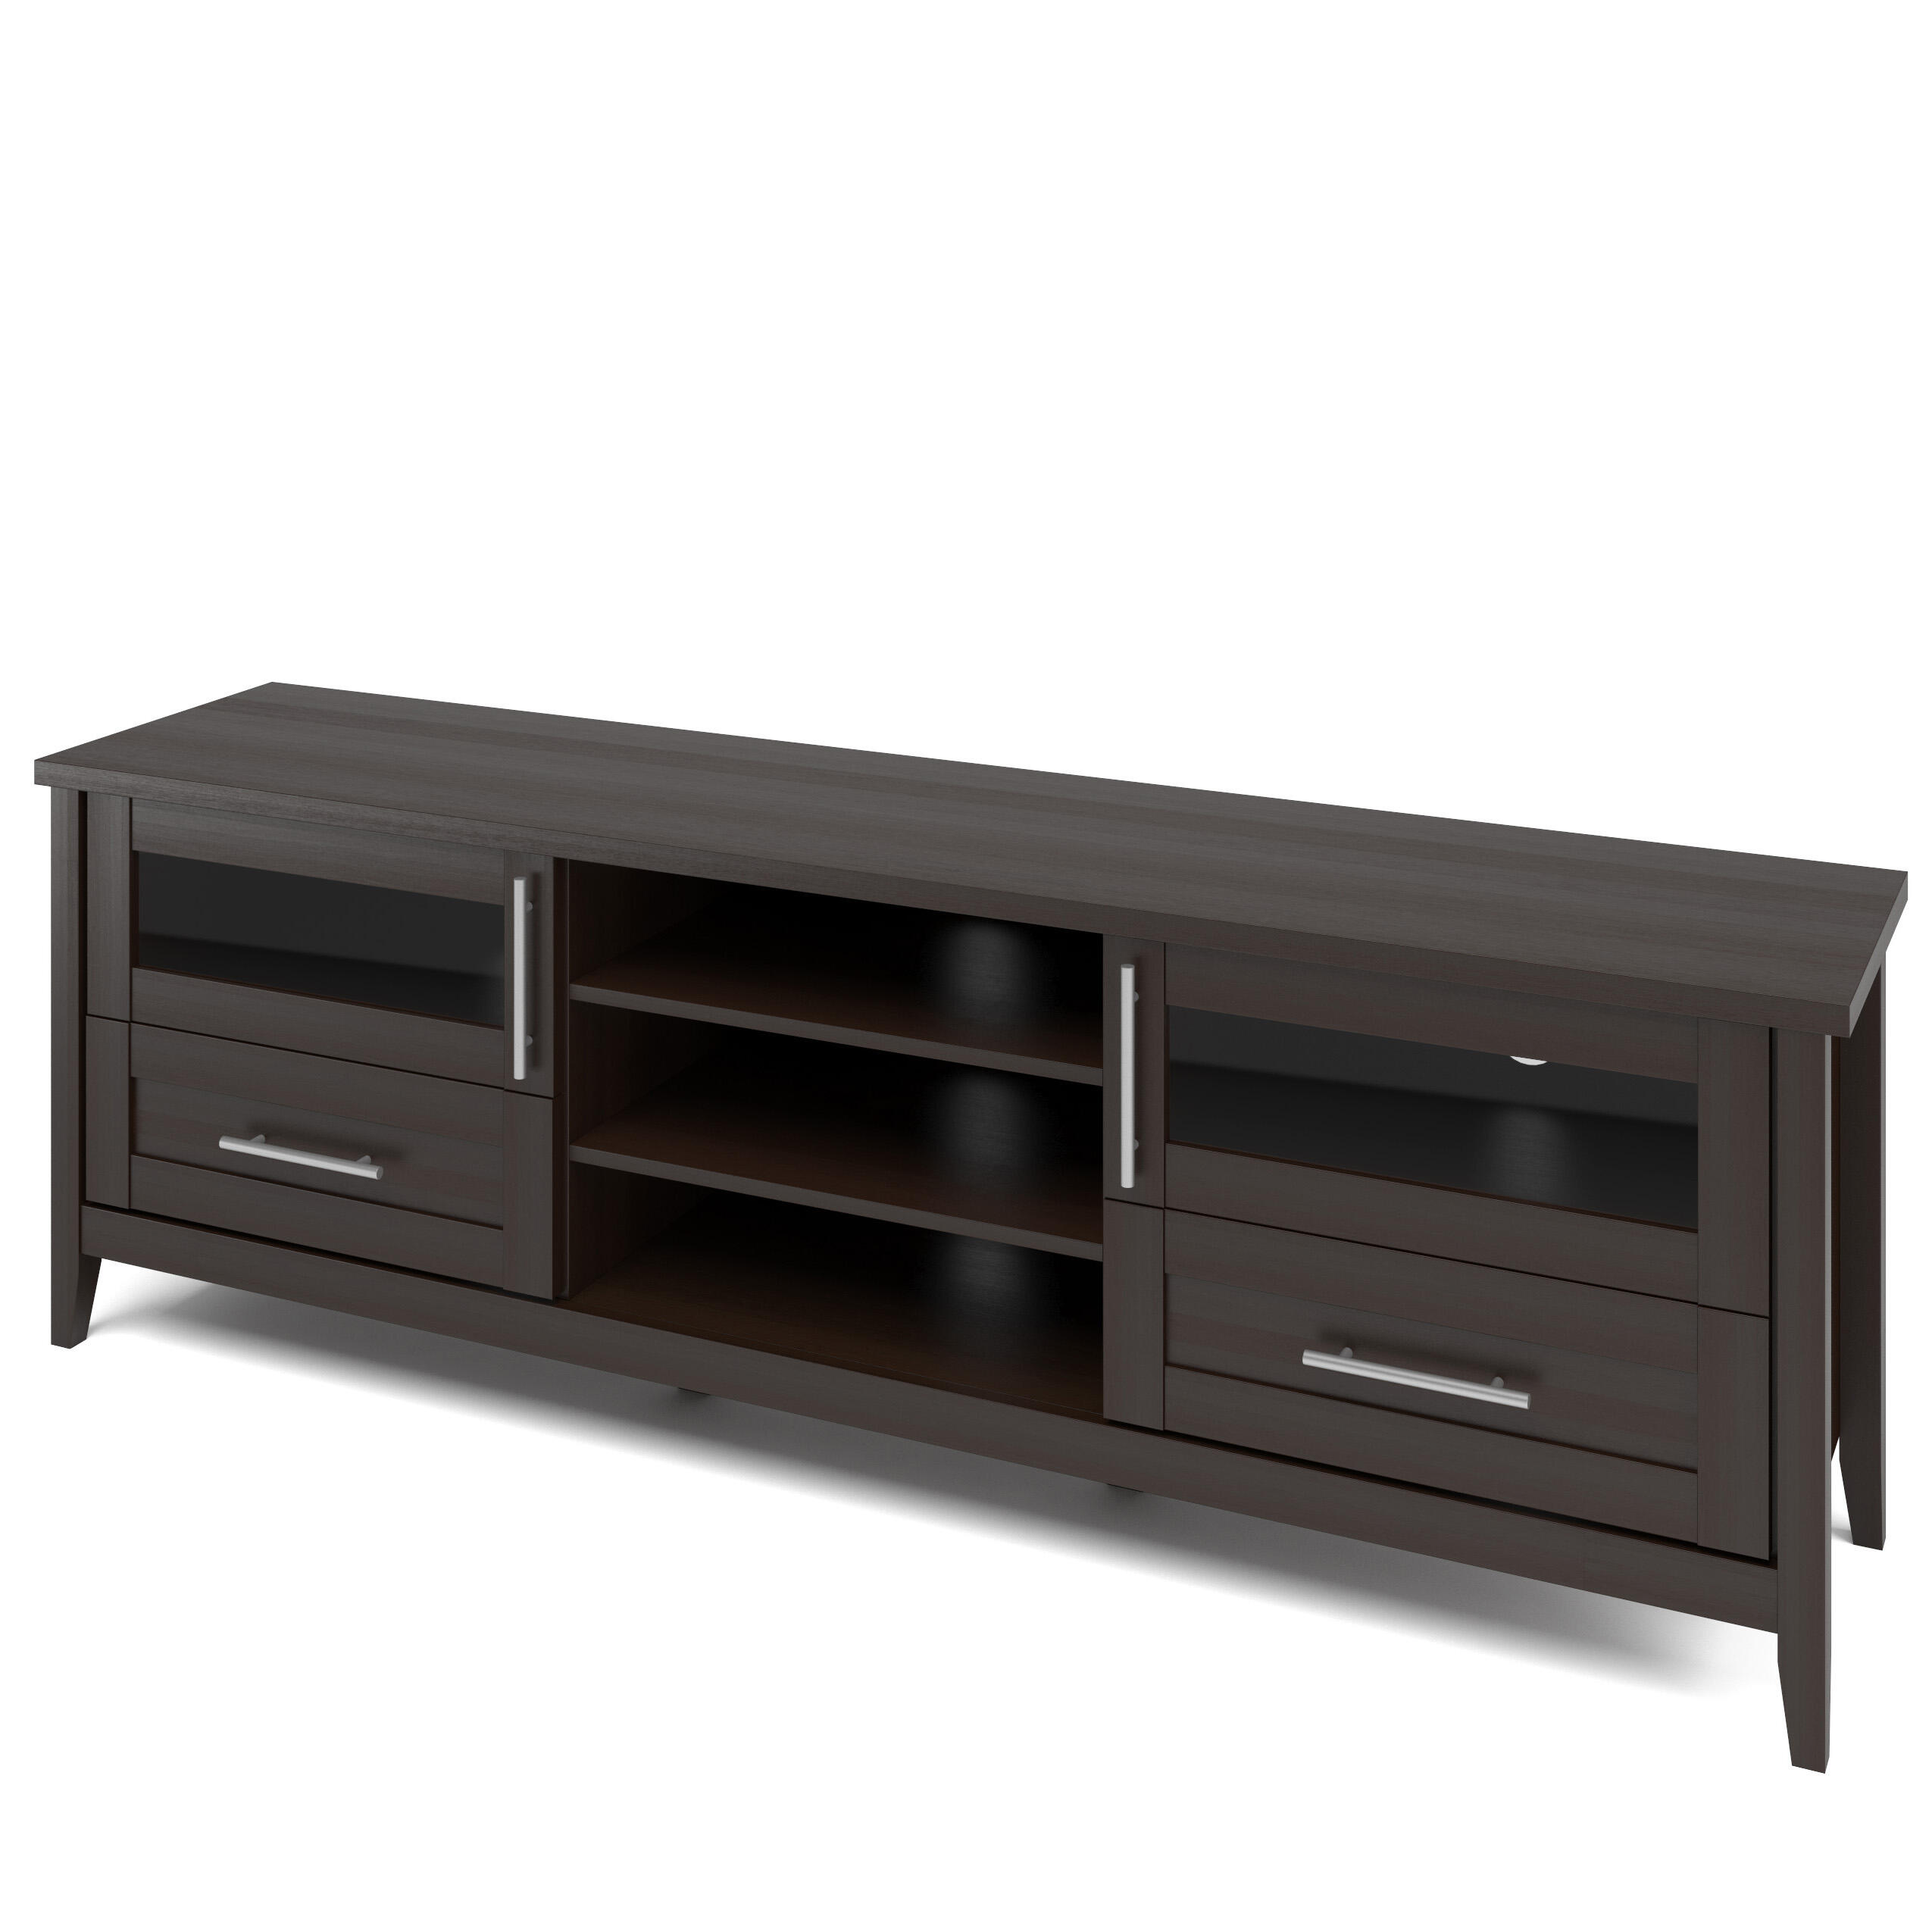 CorLiving Jackson 71 in. Dark Espresso Wood TV Stand